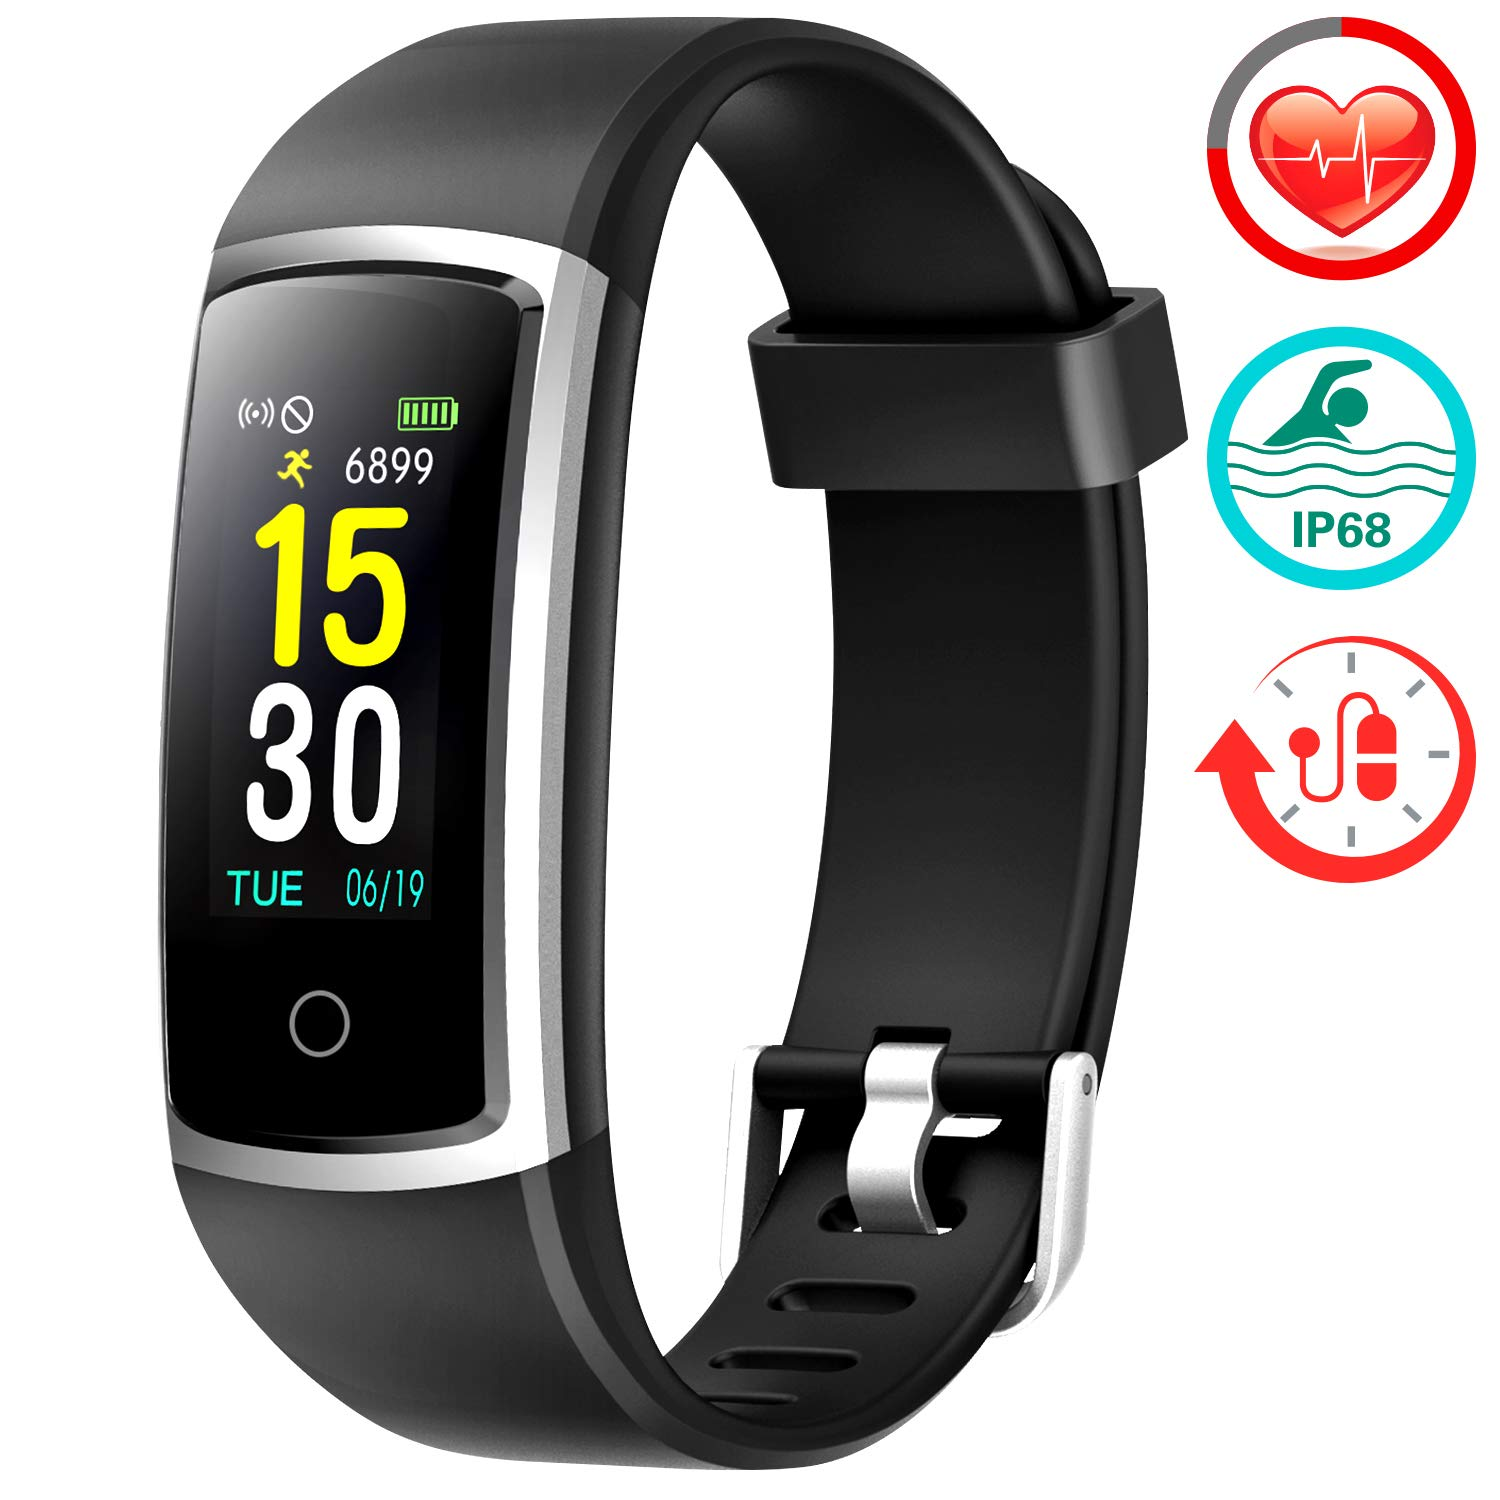 FITFORT Fitness Tracker with Blood Pressure HR Monitor – 2019 Upgraded Activity Tracker Watch with Heart Rate Color Monitor IP68 Pedometer Calorie Counter and 14 Sports Tracking for Women Kids